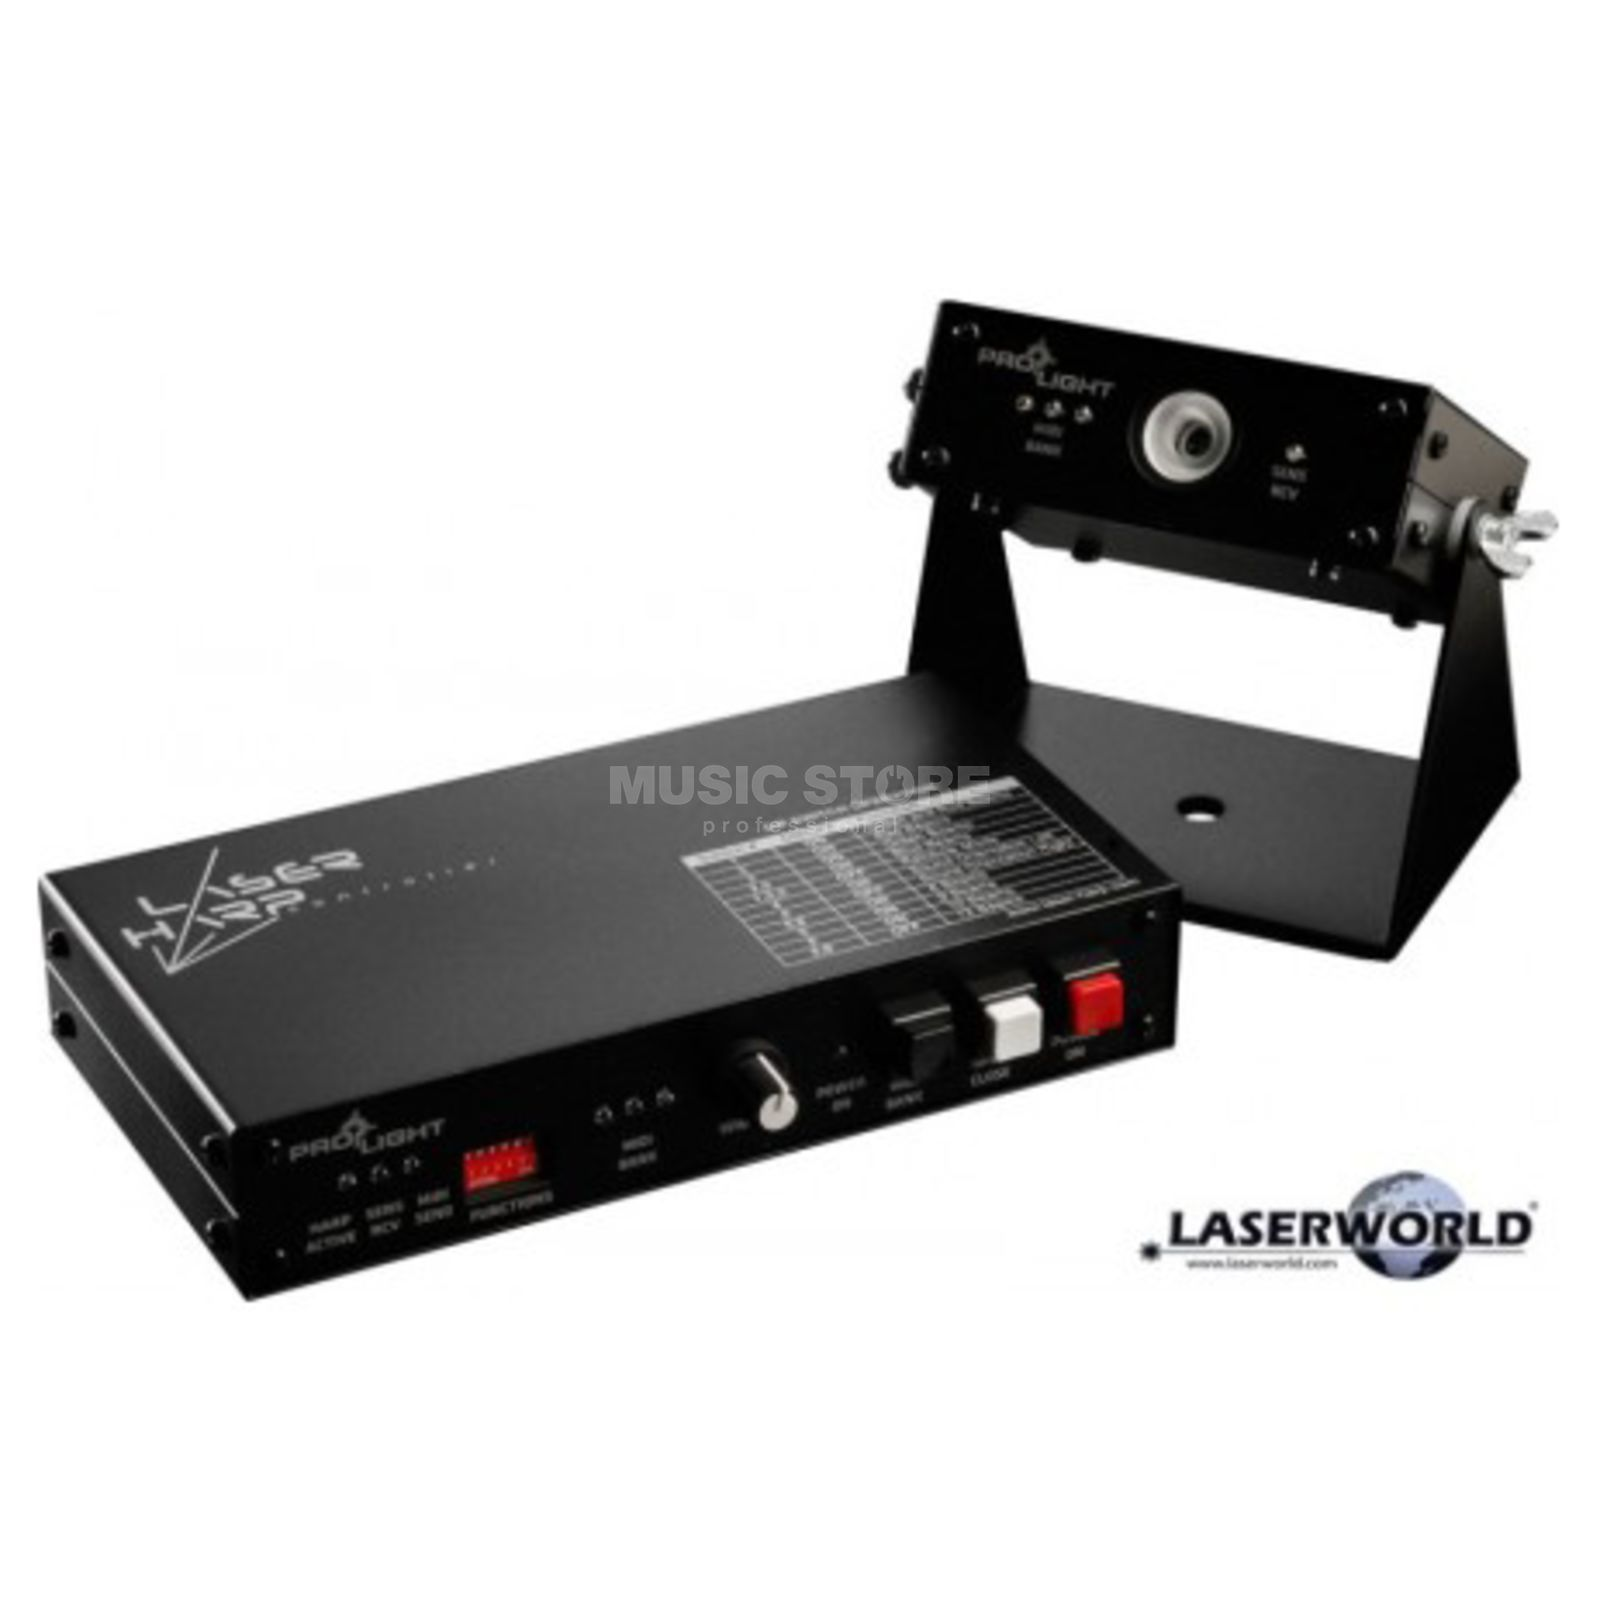 Laserworld Laser Harp Controller Laser-to-Midi-Controller Product Image